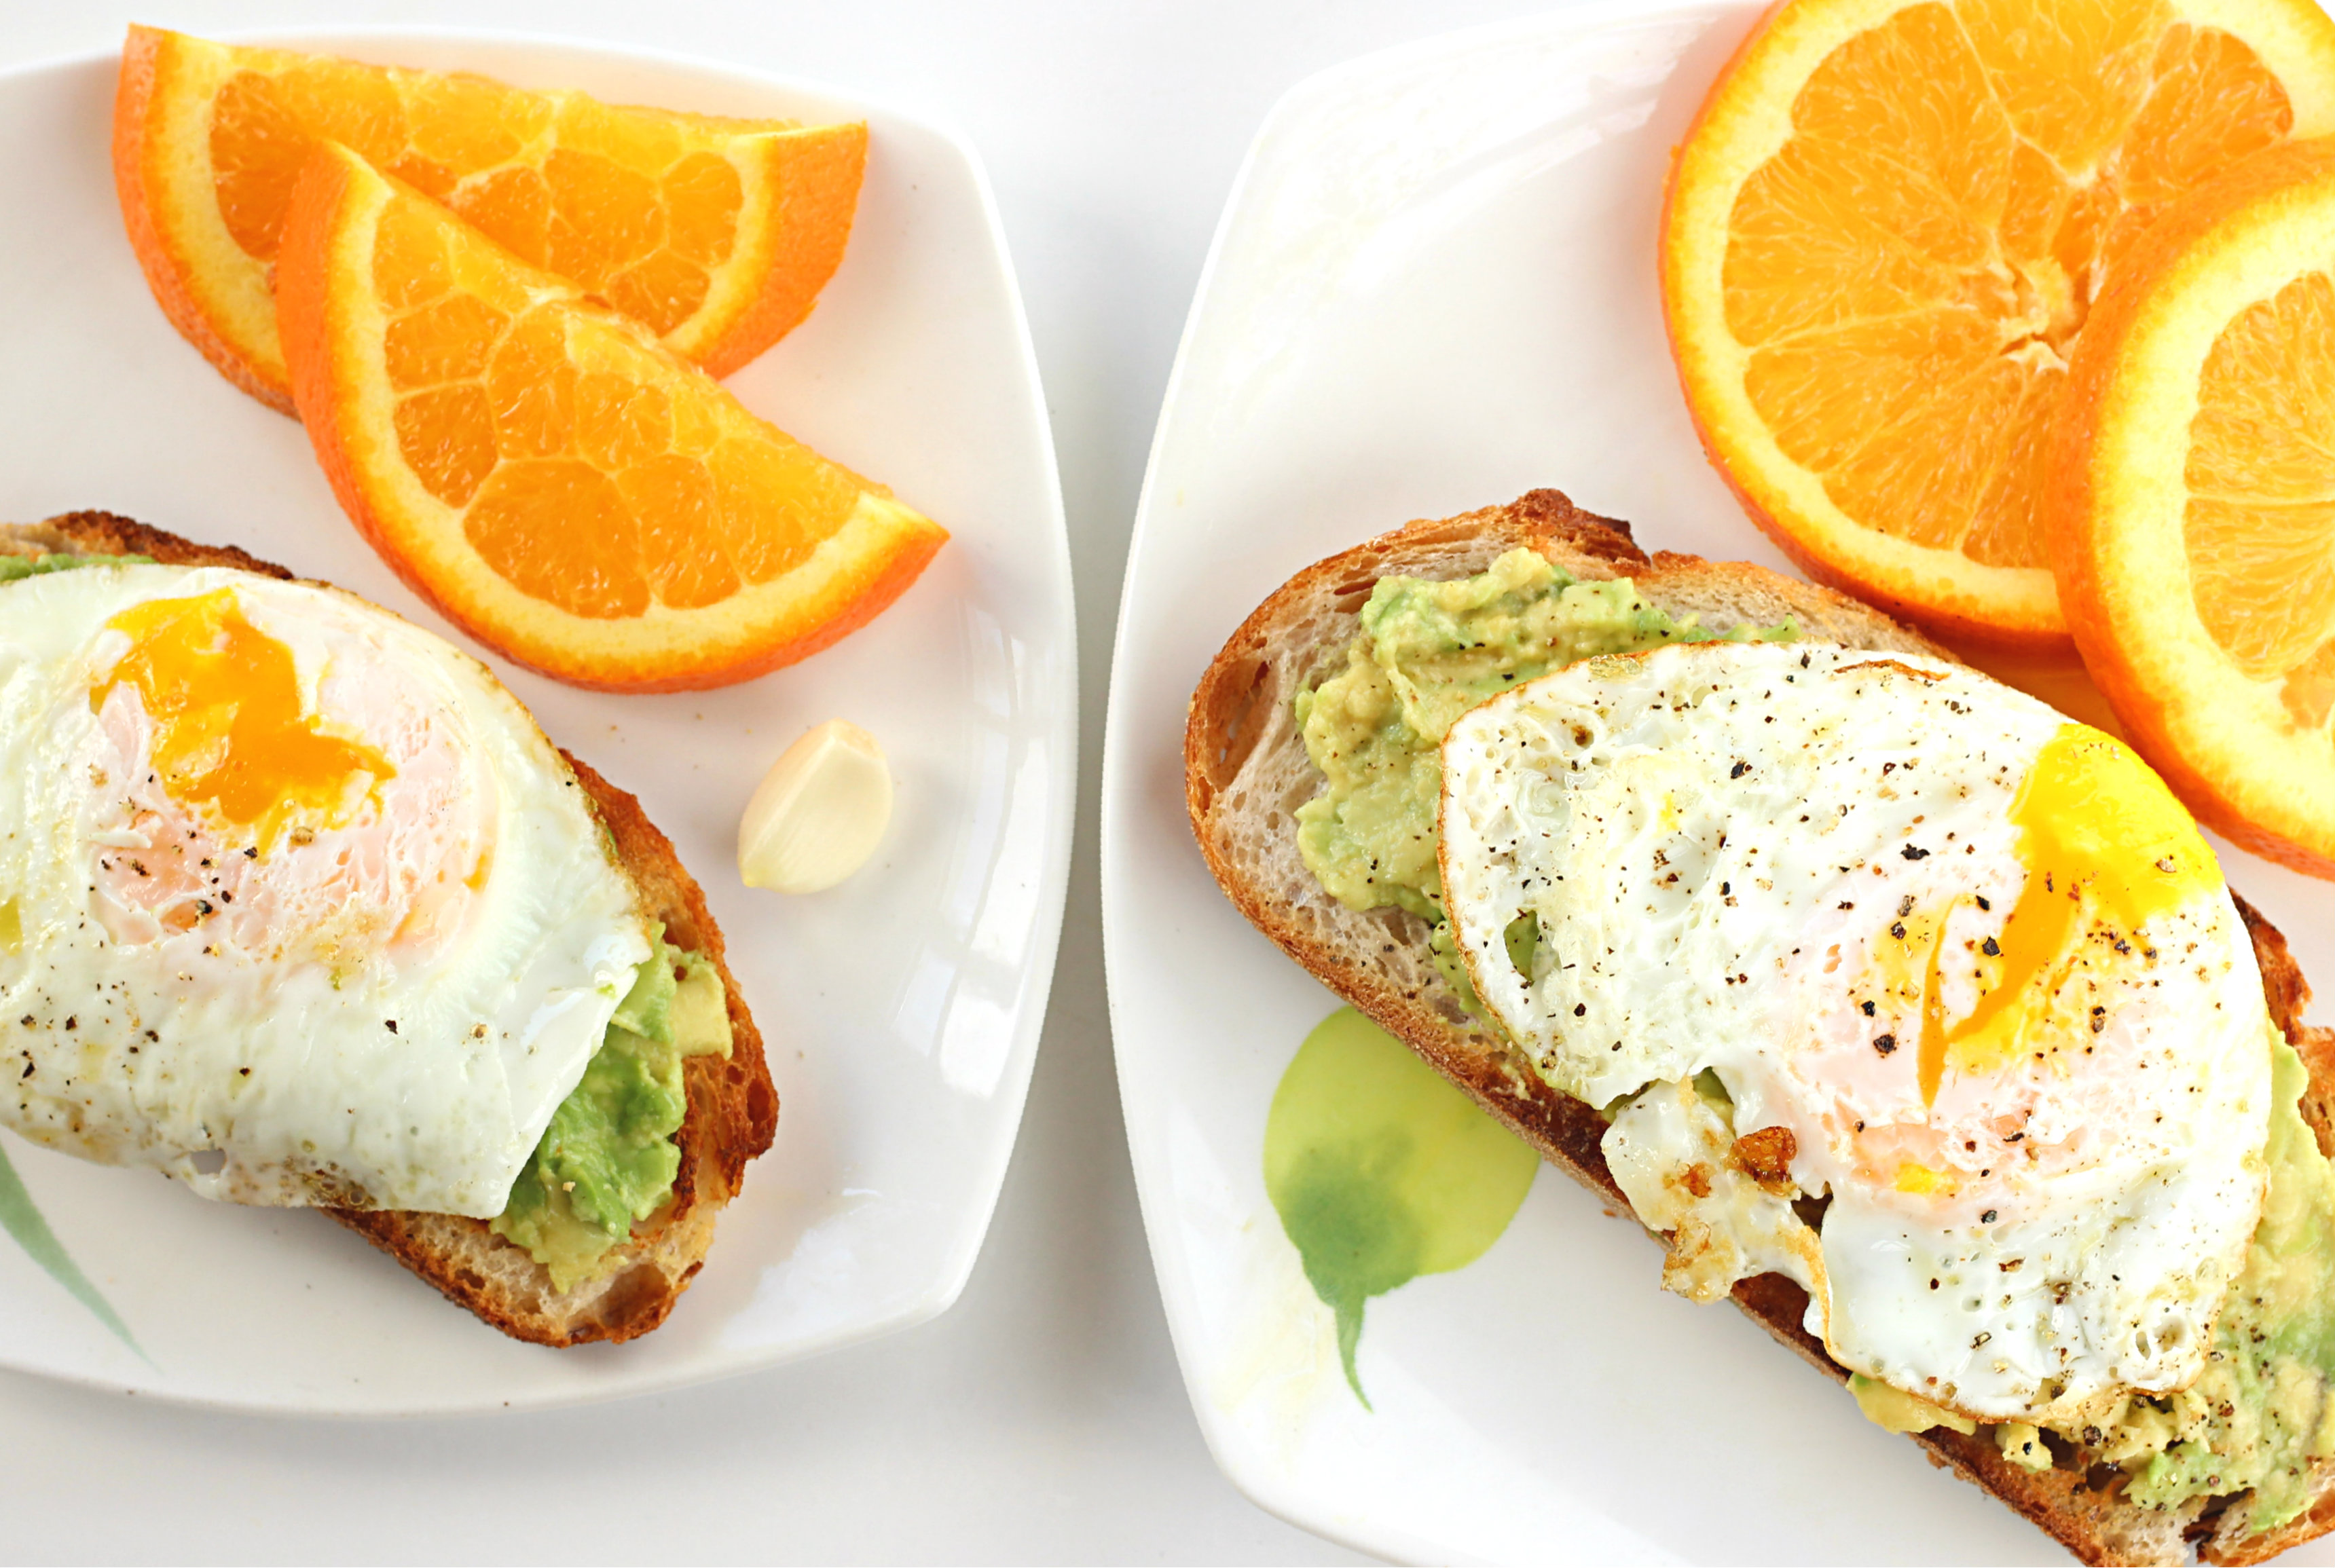 Avocado toast with garlic and over easy egg.